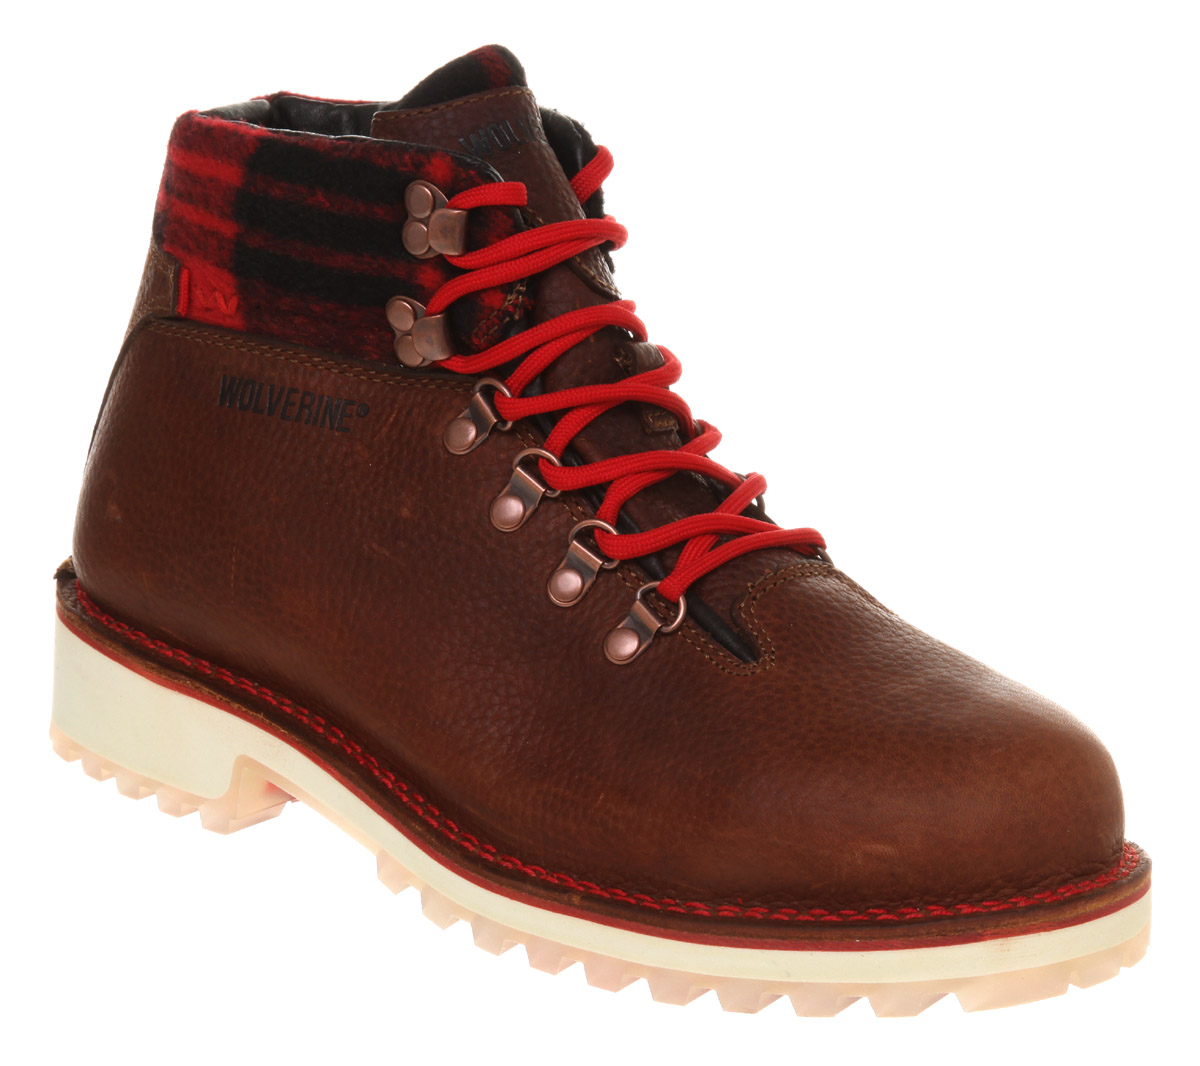 Mens-Wolverine-Tyrol-Hiker-Boot-Brown-Leather-Boots